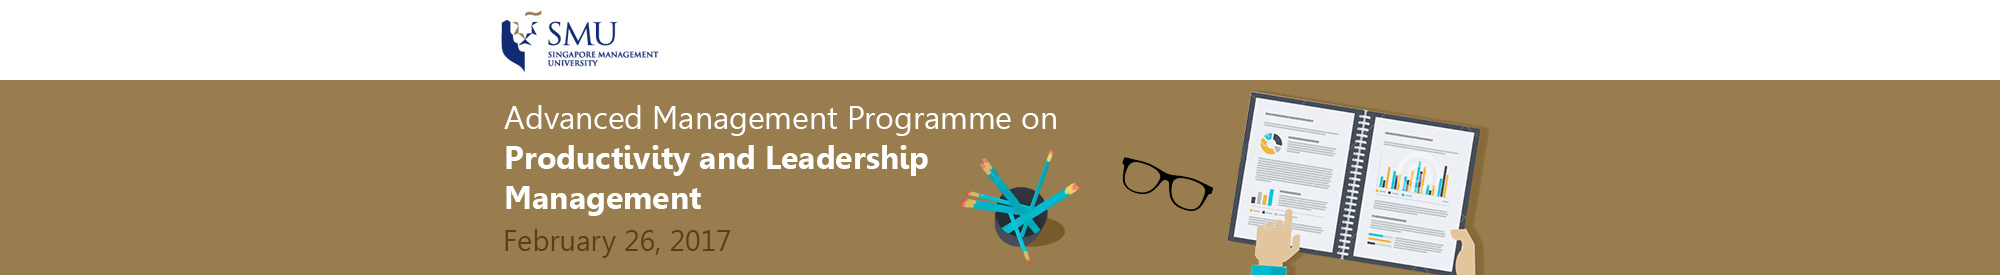 Advanced Management Programme on Productivity and Leadership Management